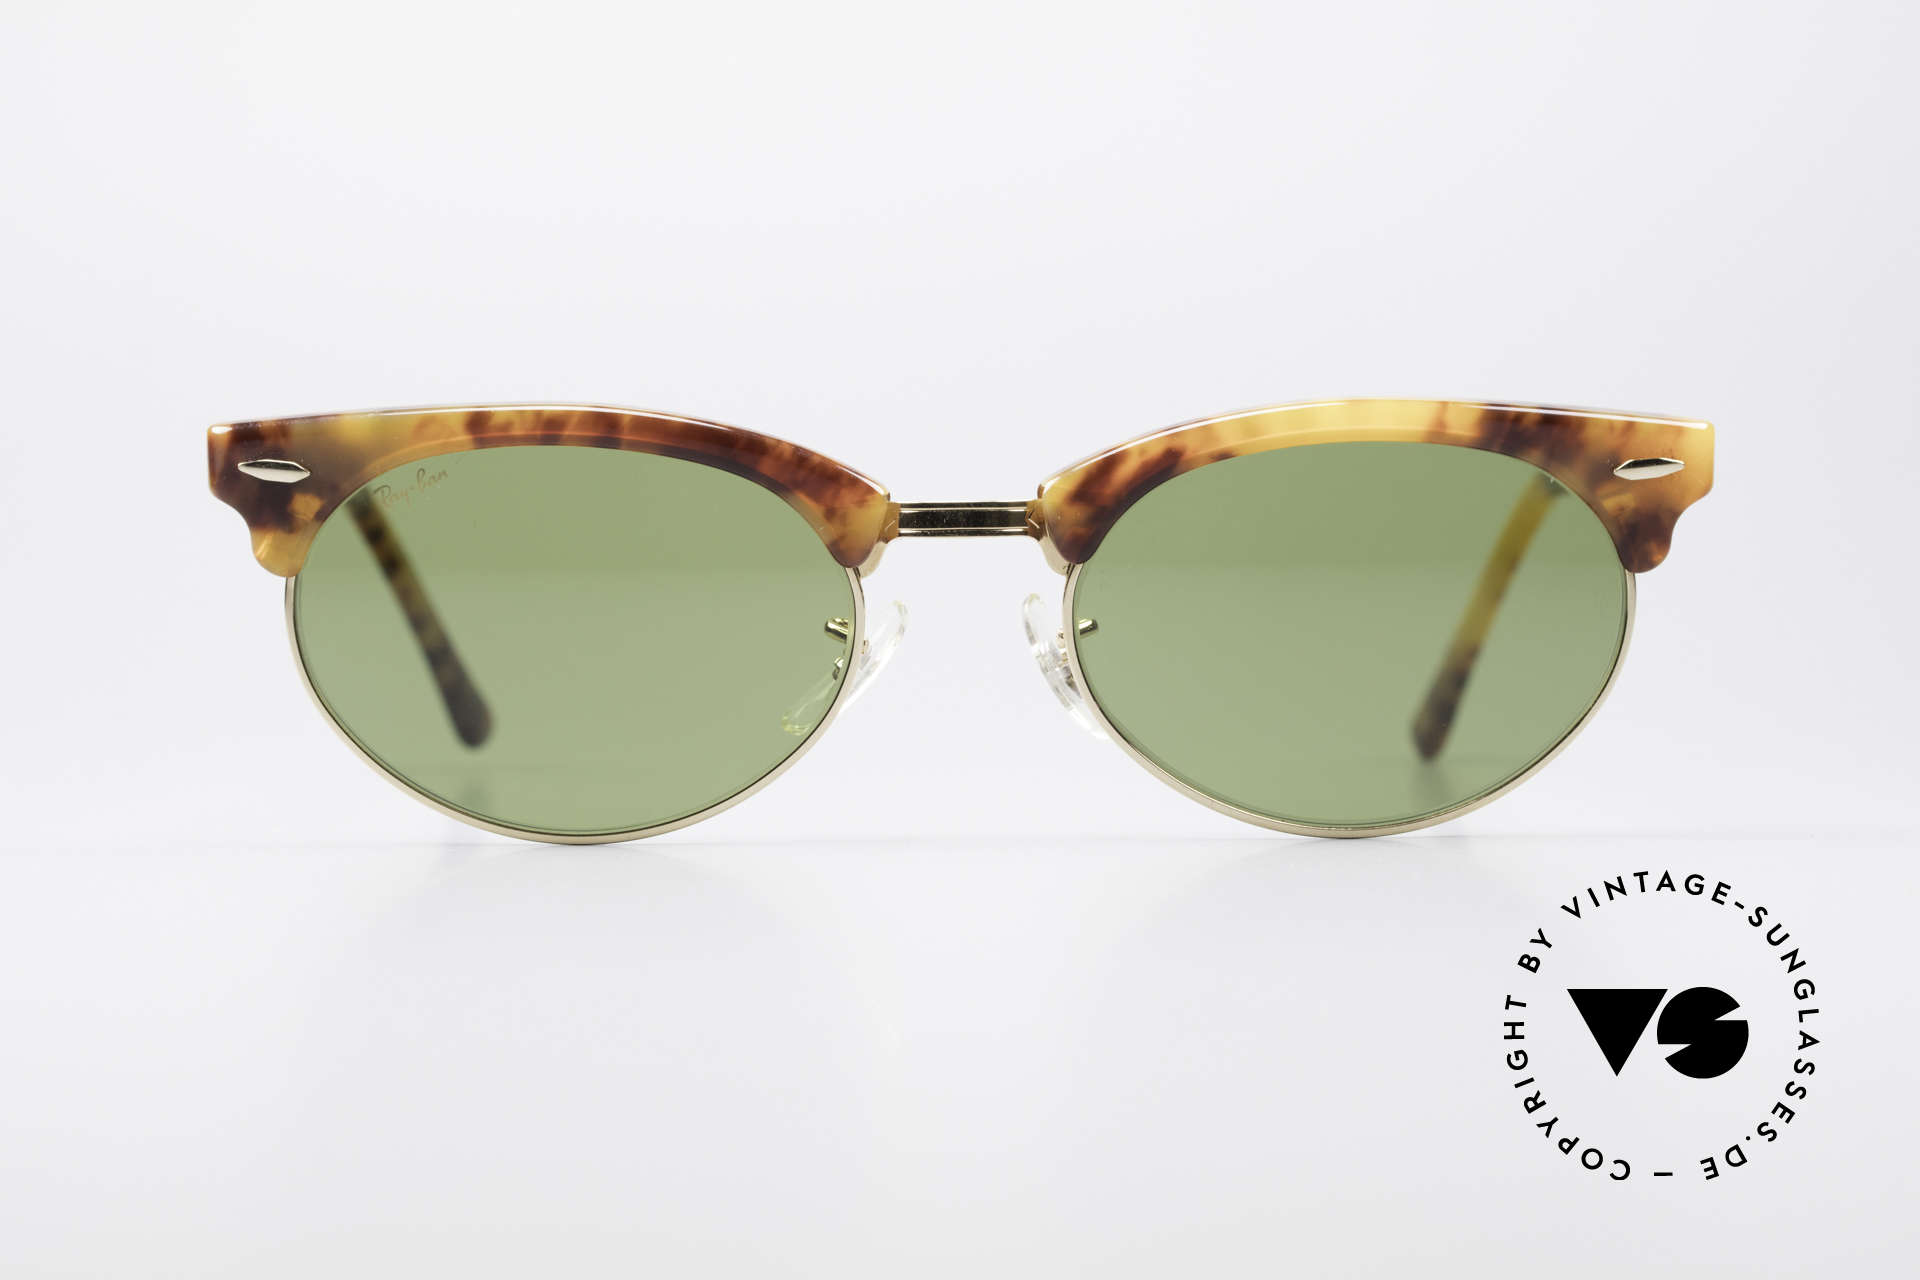 a8c668a2e231 You may also like these glasses. Ray Ban Rituals Combo Oval 90 s Ray Ban  Sunglasses ...